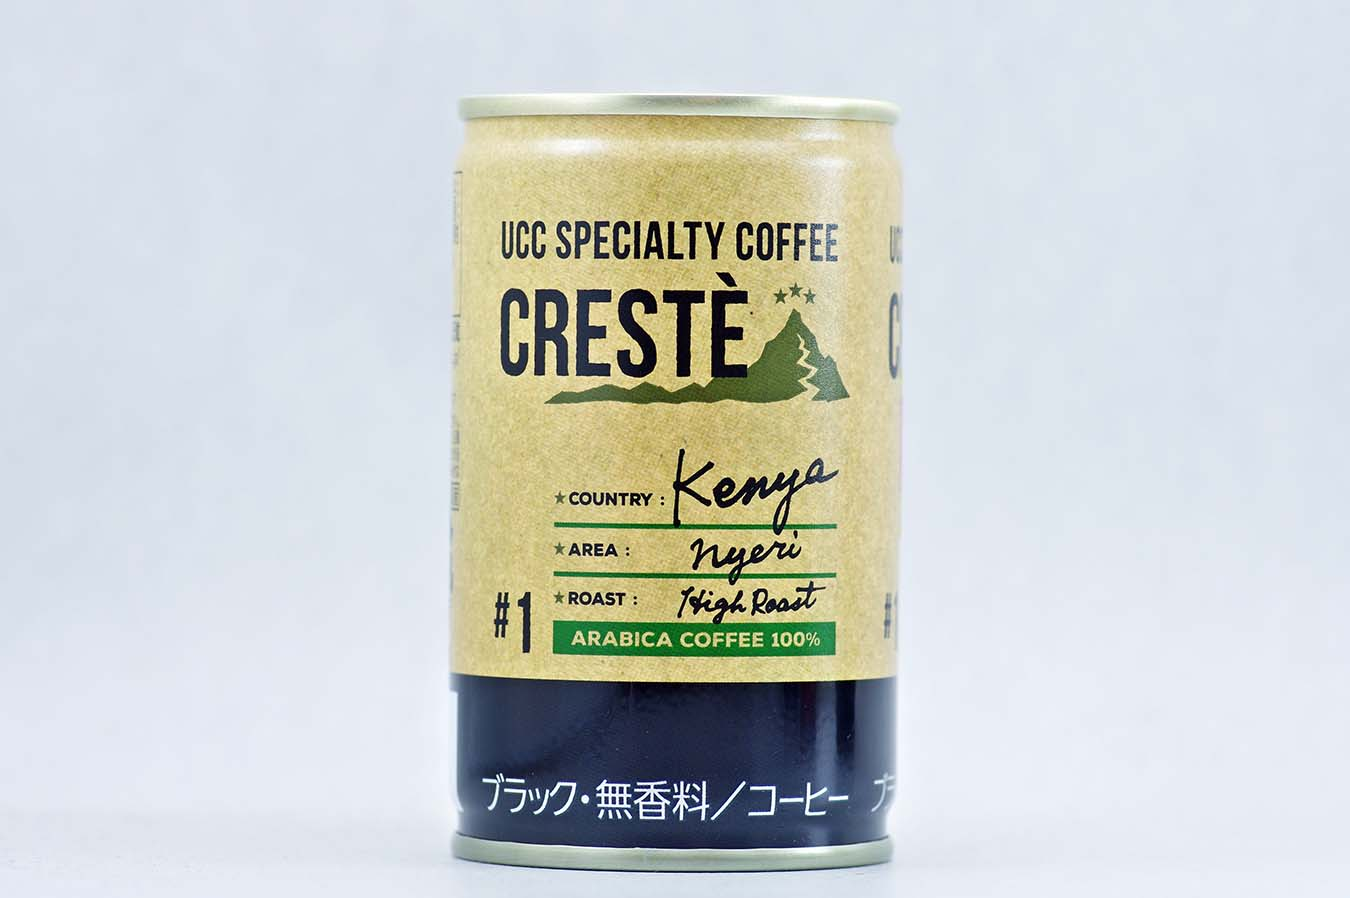 UCC SPECIALTY COFFEE CRESTÈ 2015年10月